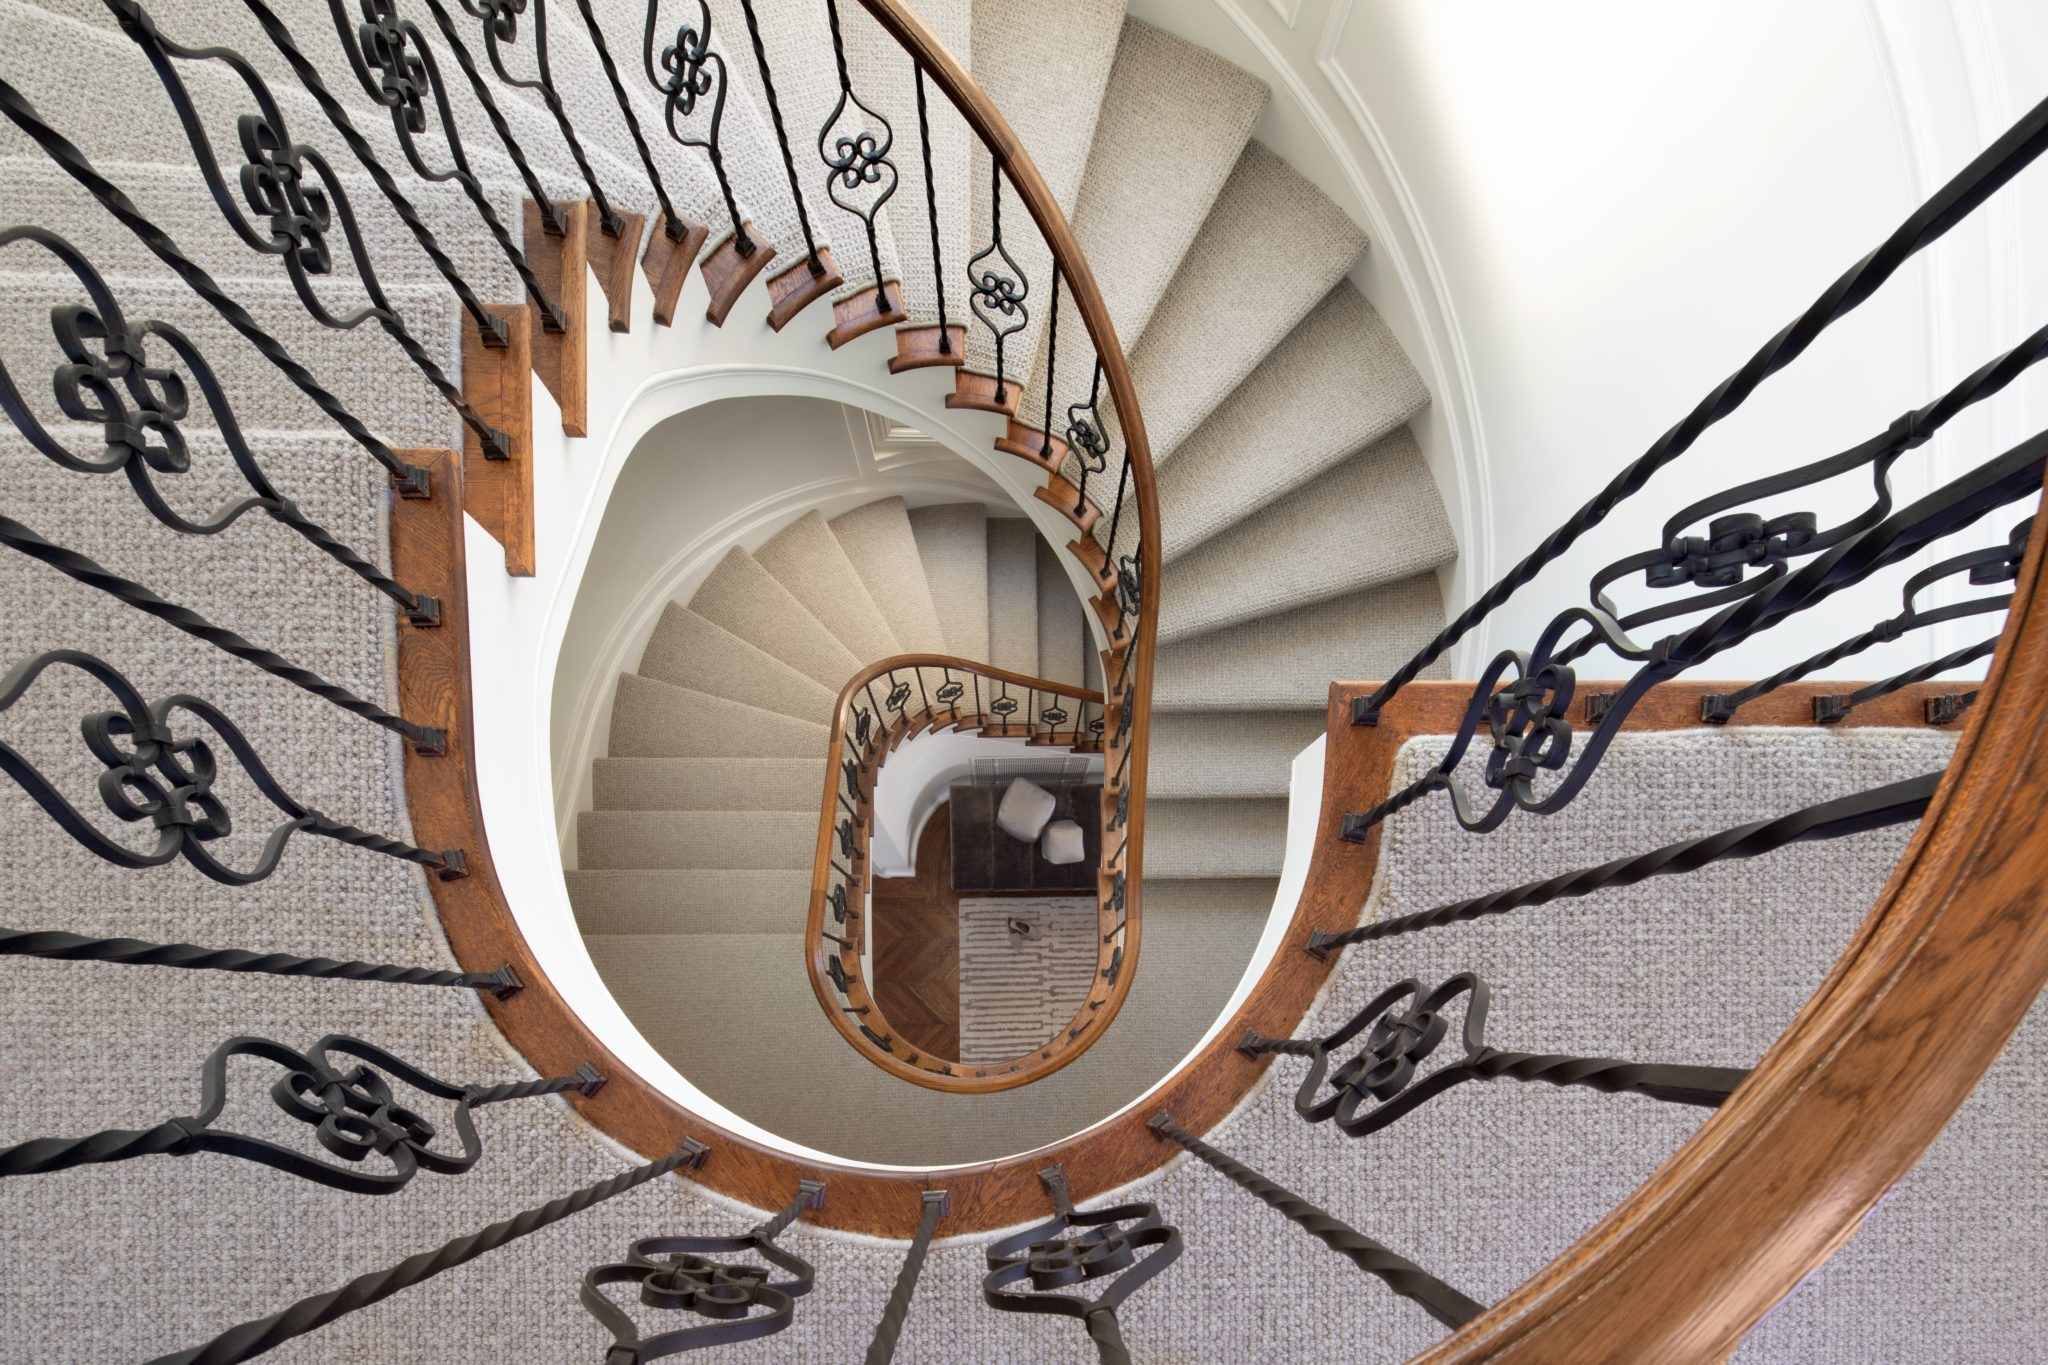 Unique Beautiful Banister Designs Chairish Blog   Reclaimed Spiral Staircase For Sale   Architectural Antiques   Wrought Iron Spiral   Architectural Salvage   Reclaimed Antique   Railing